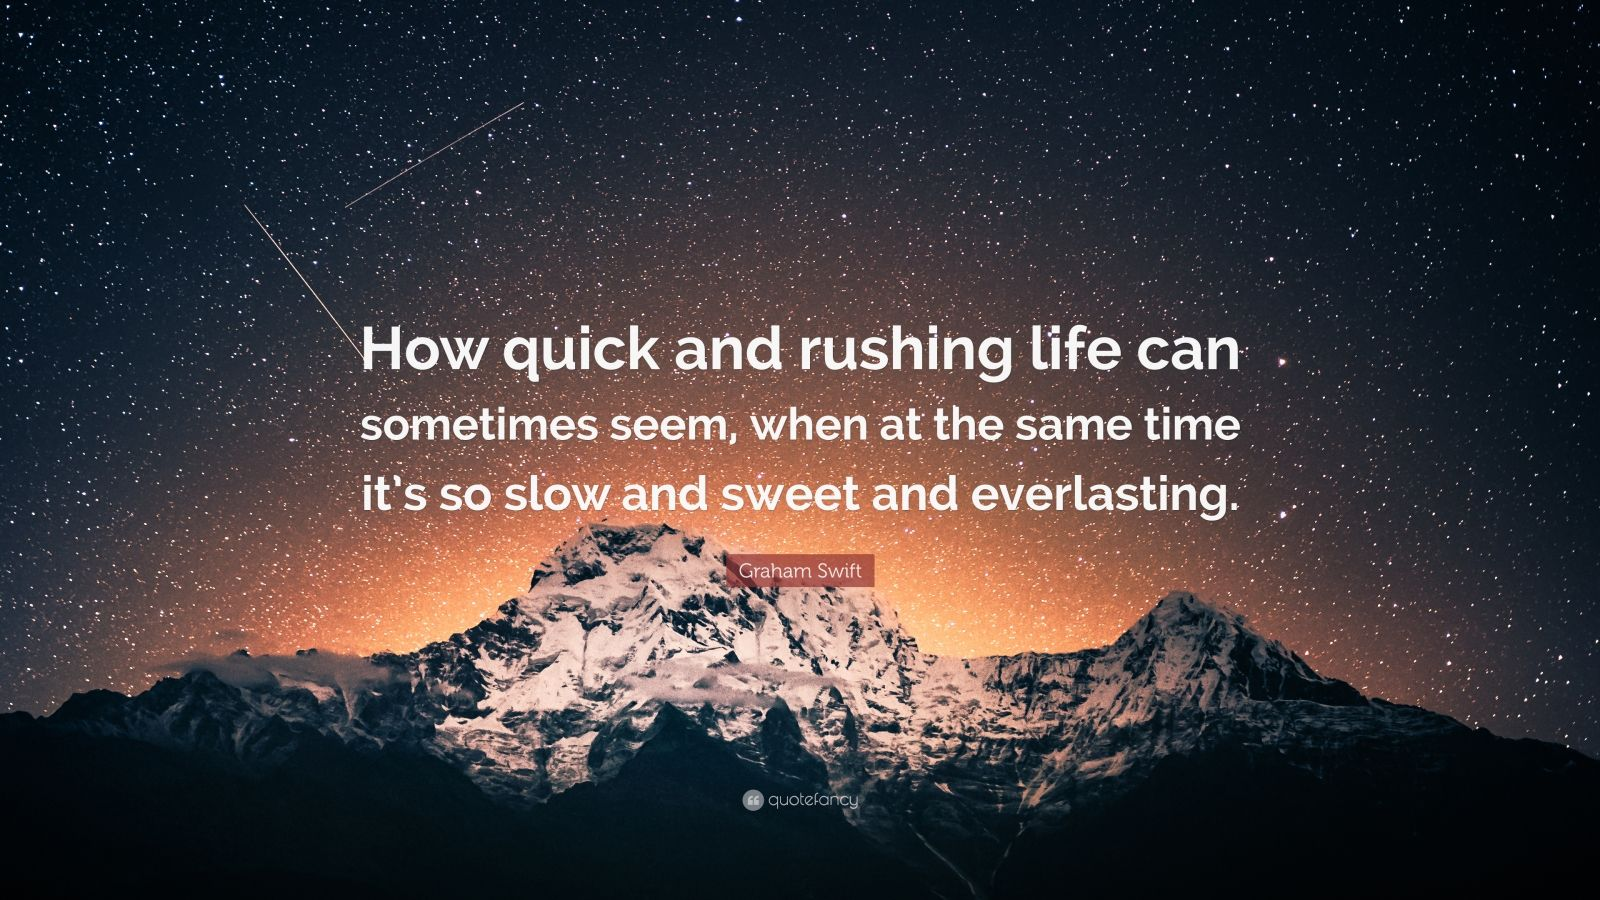 Quotes About Rushing Life: Graham Swift Quotes (37 Wallpapers)